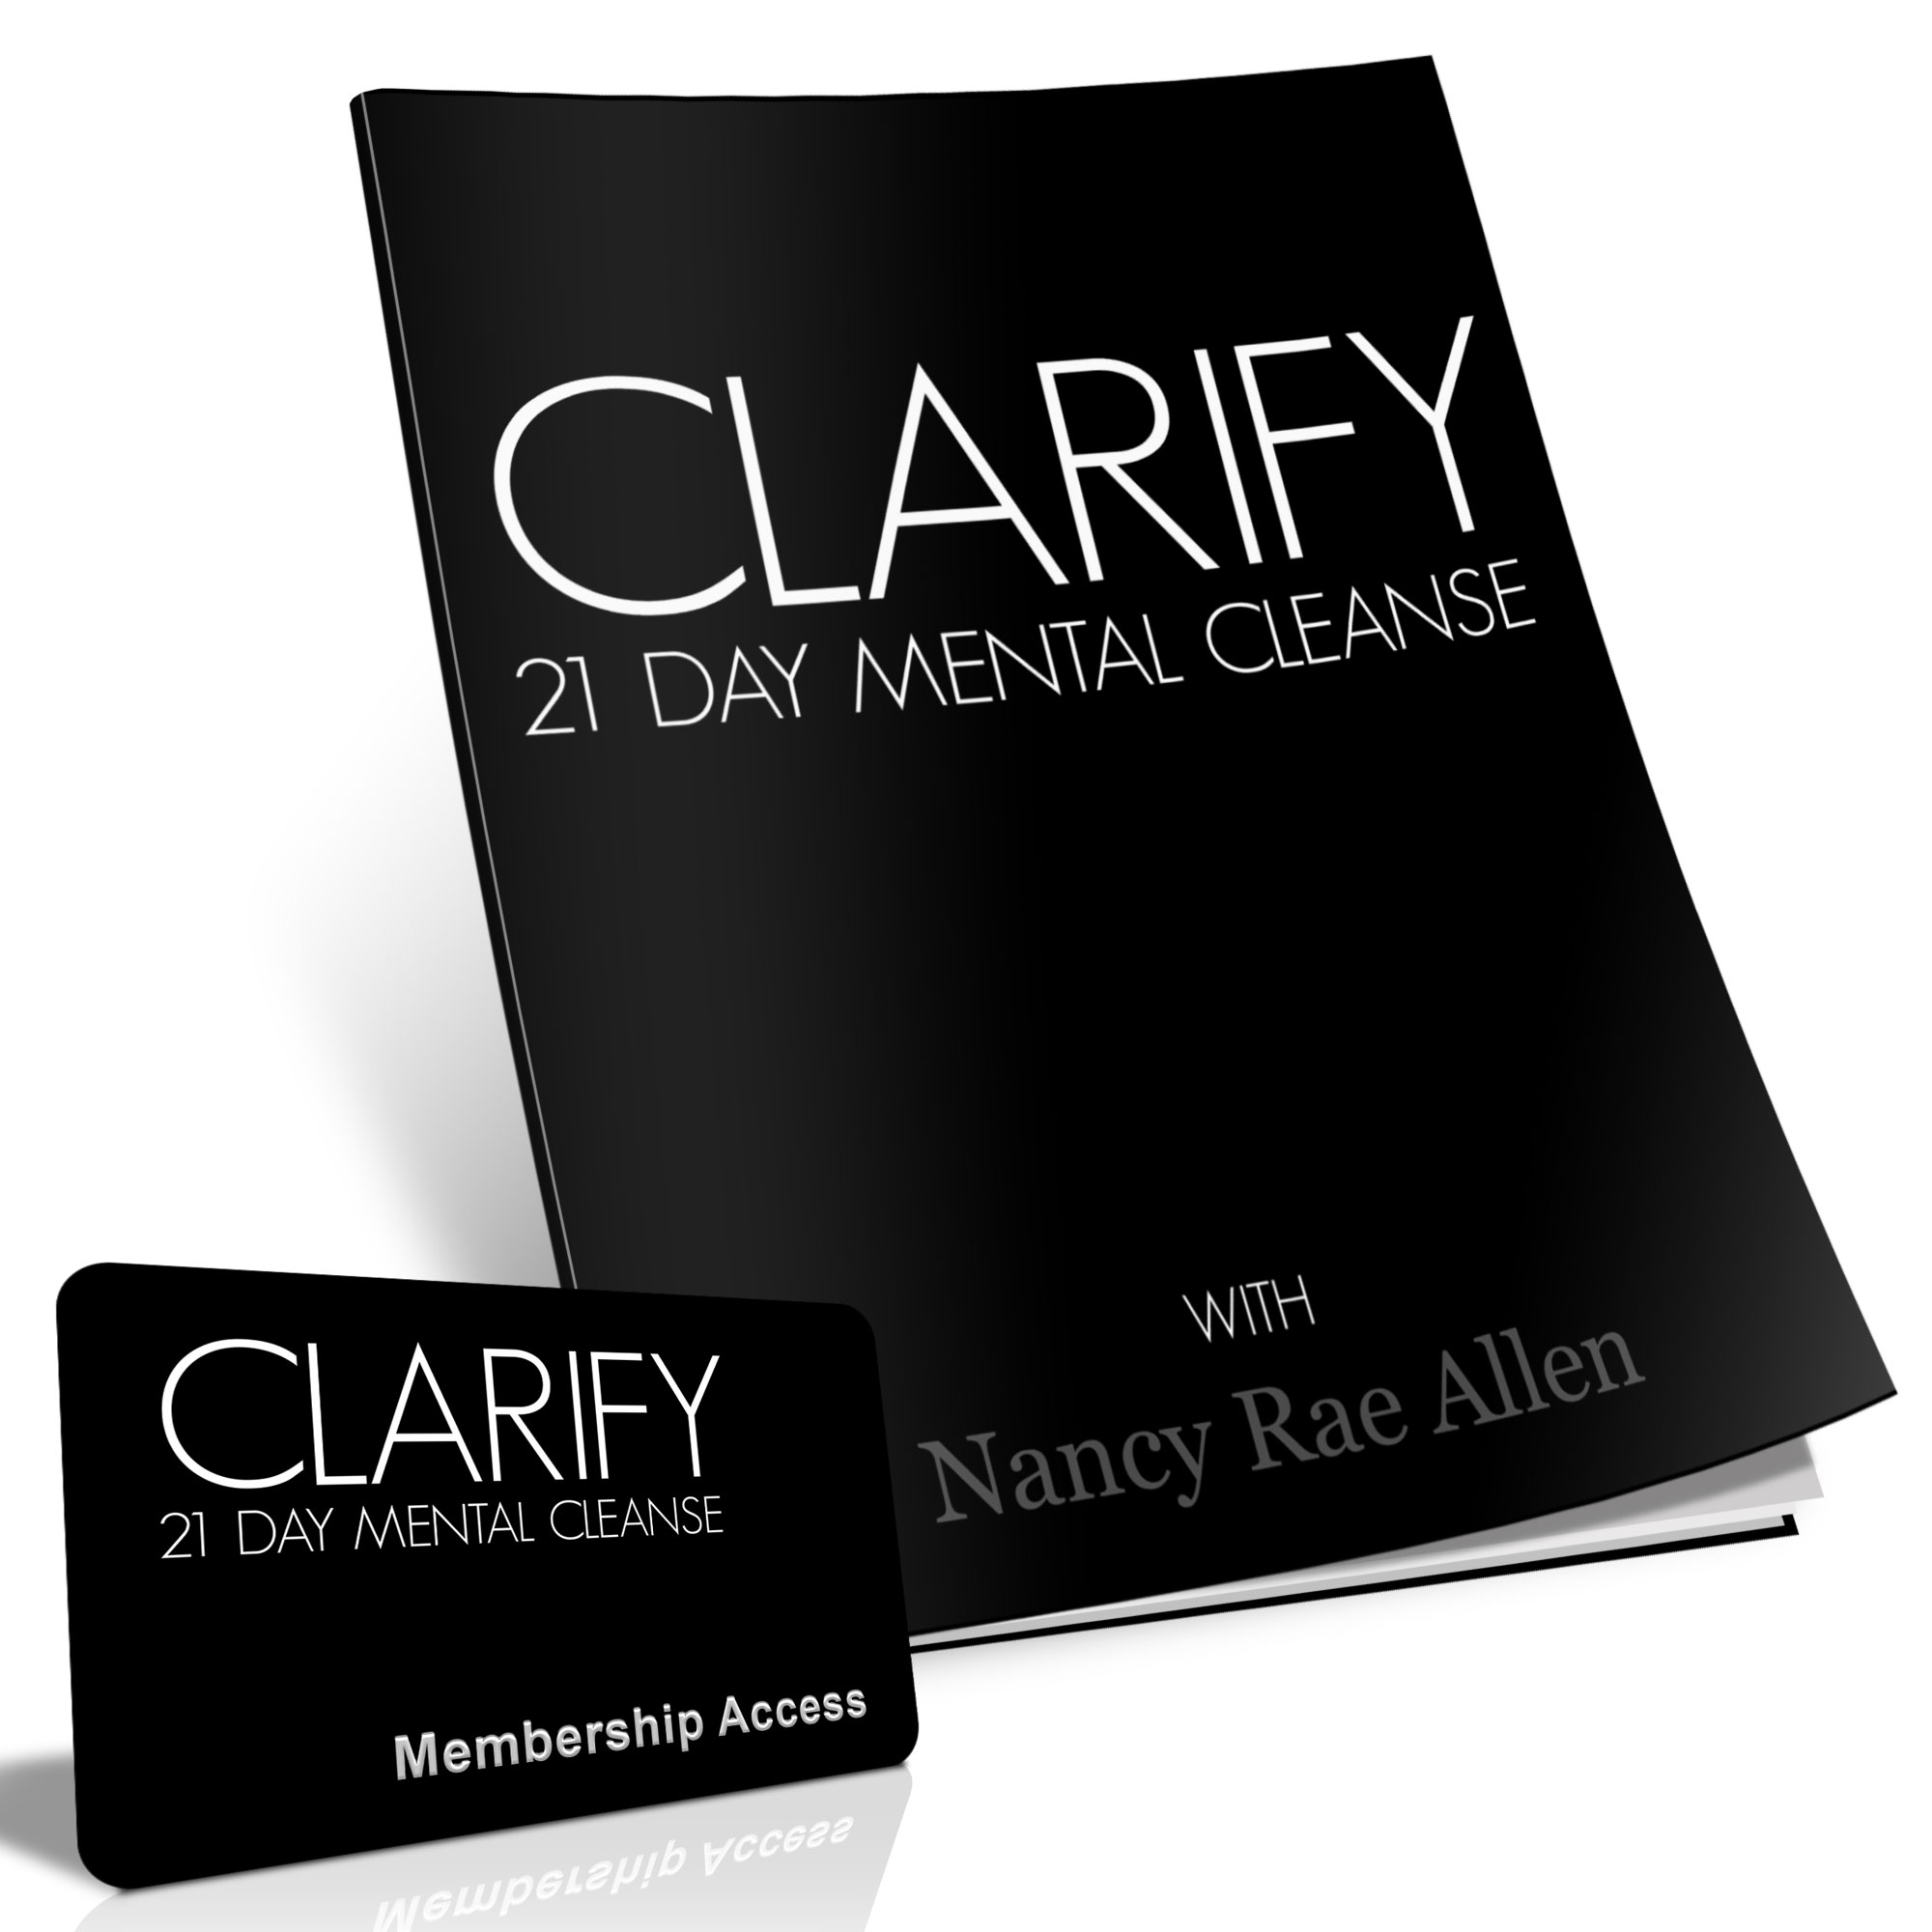 Clarify- 21 Day Mental Cleanse